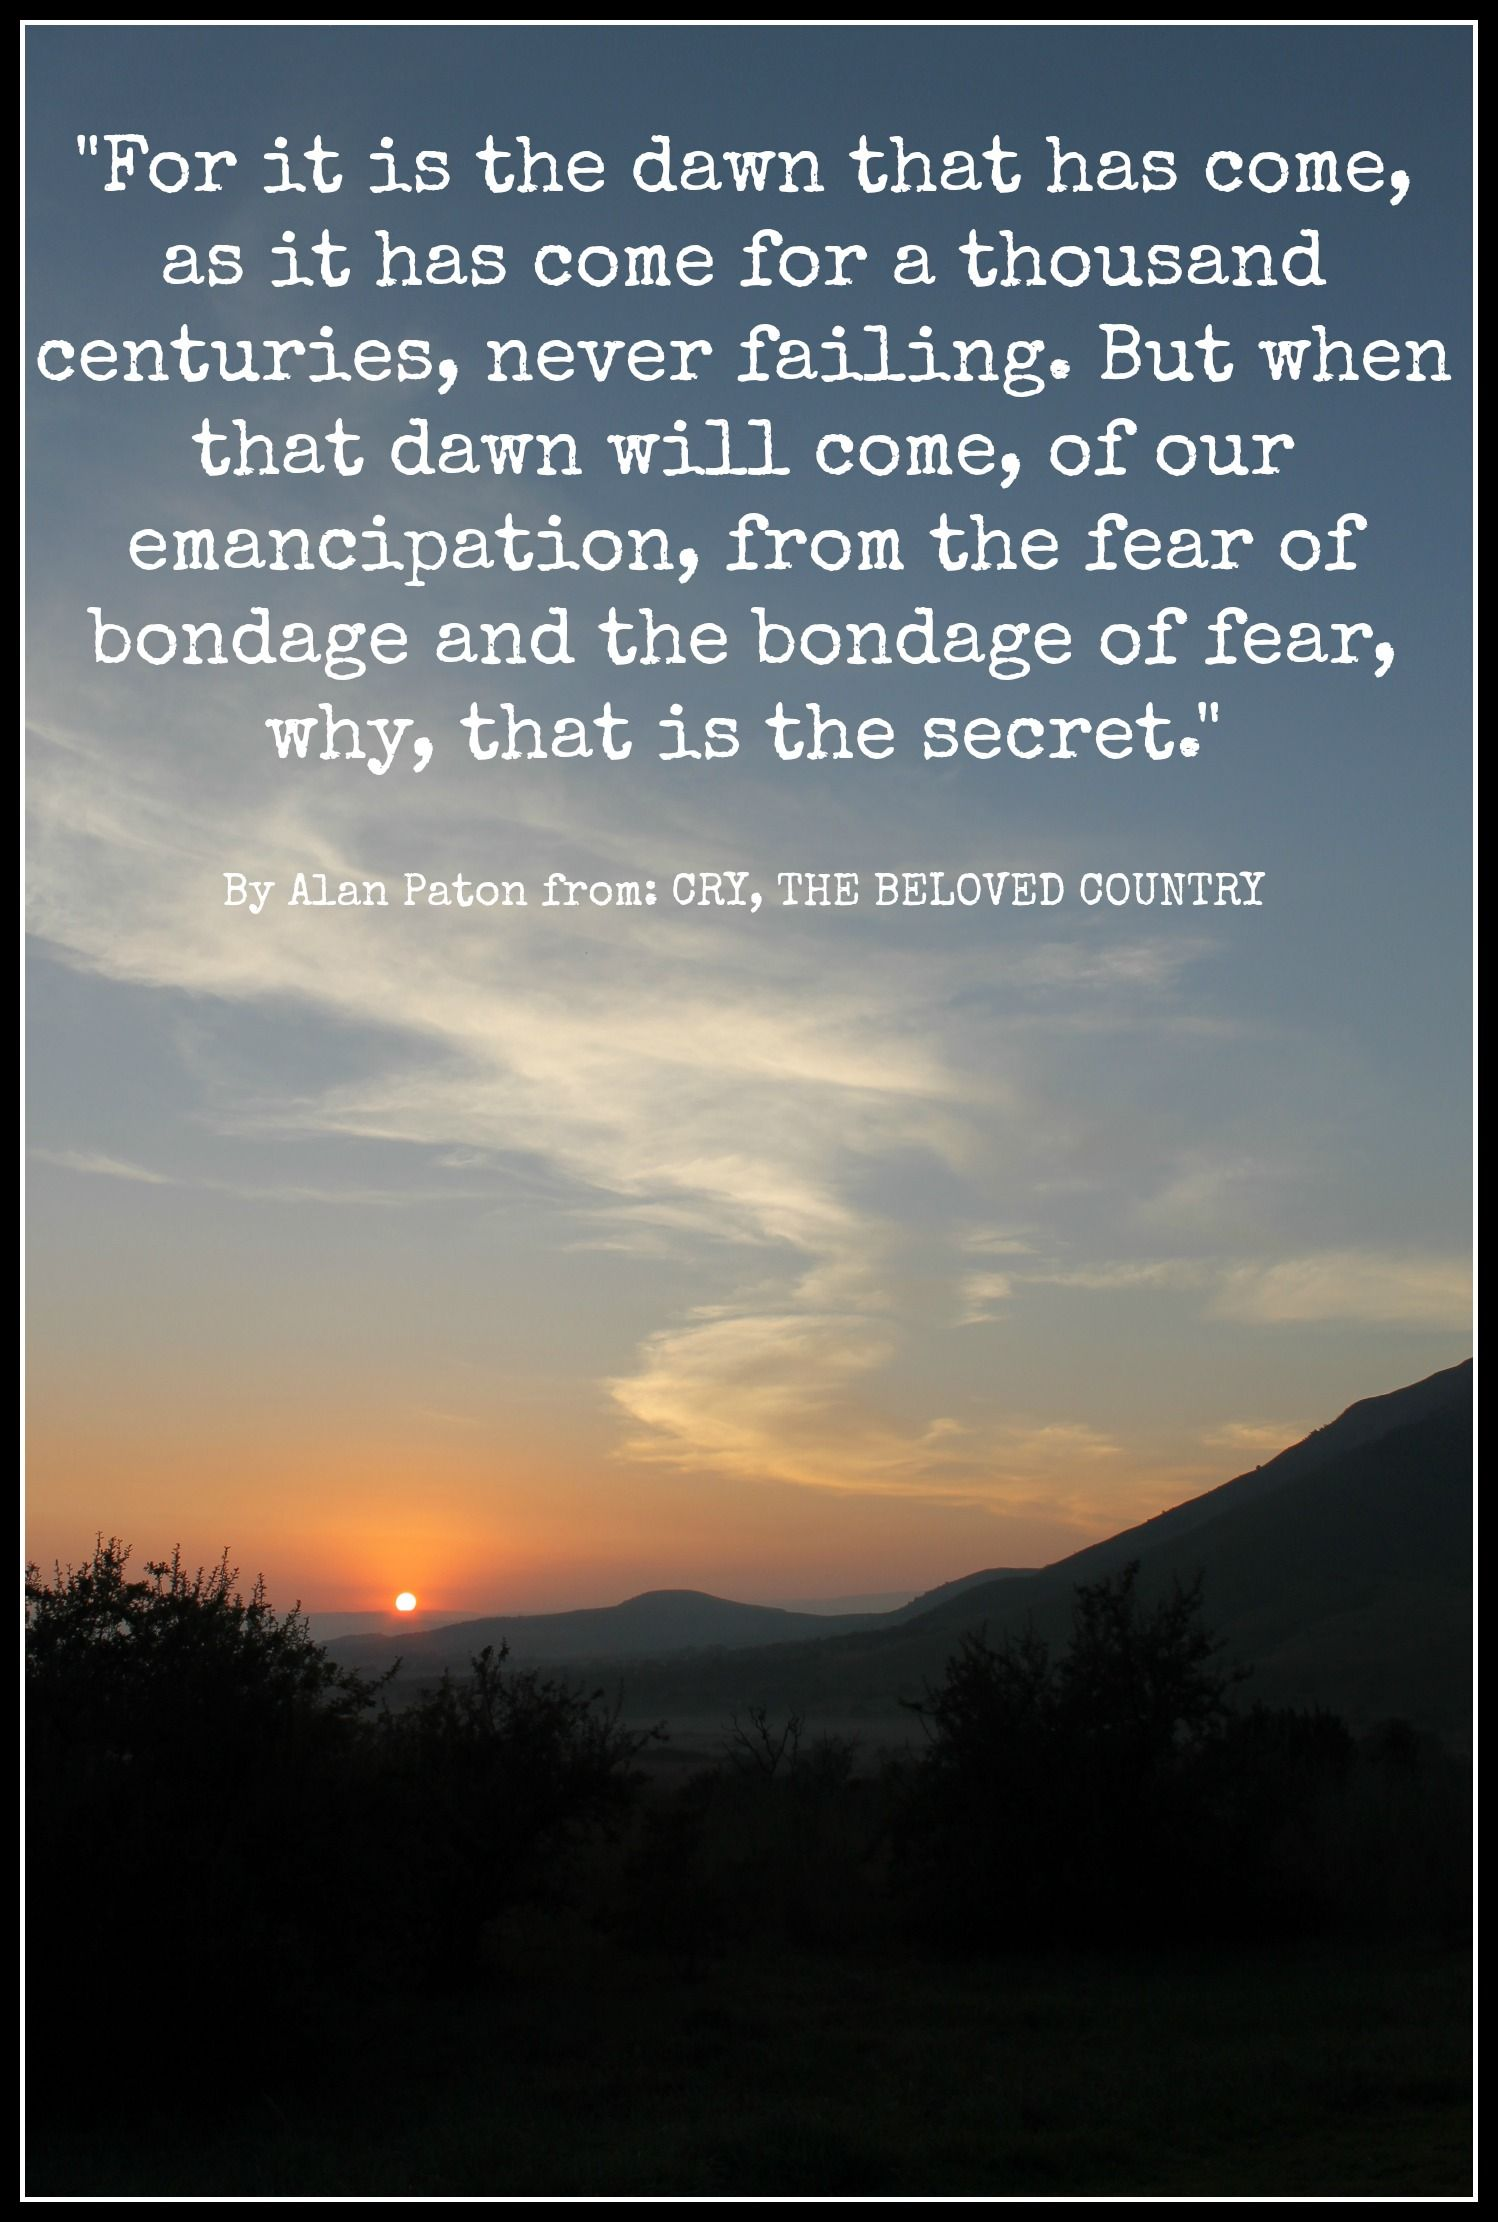 a quote by alan paton from cry the beloved country quotes a quote by alan paton from cry the beloved country